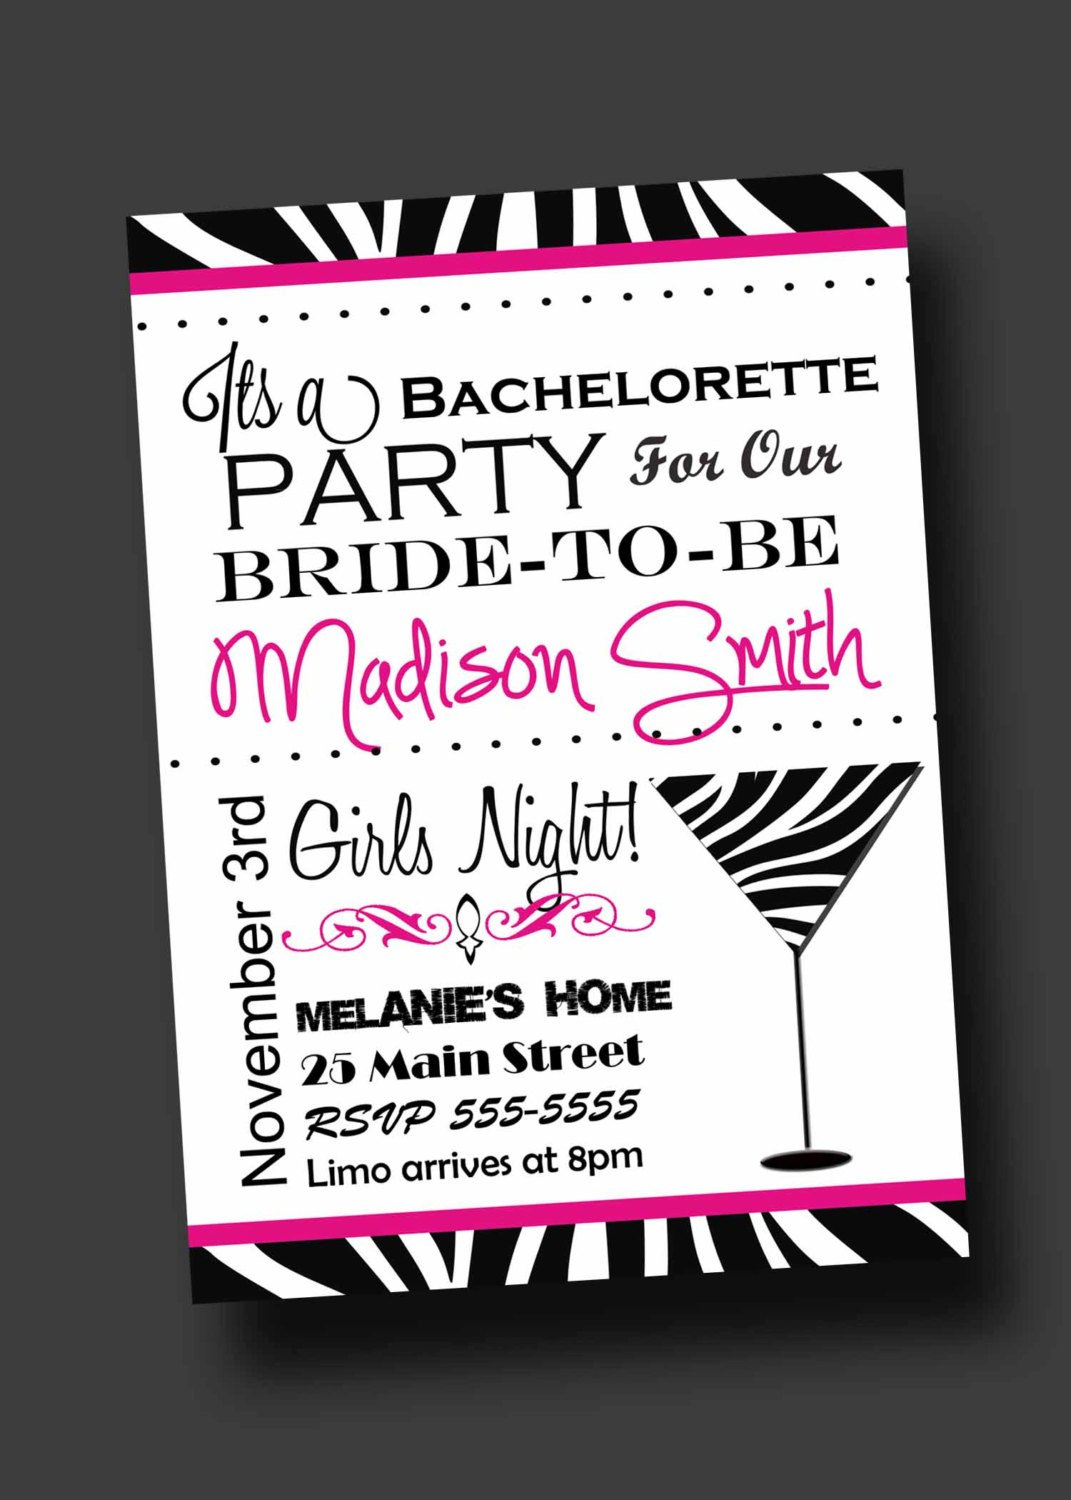 Bachelorette Party Invitation Templates Bachelorette Party Invitation Zebra Print Printable Digital